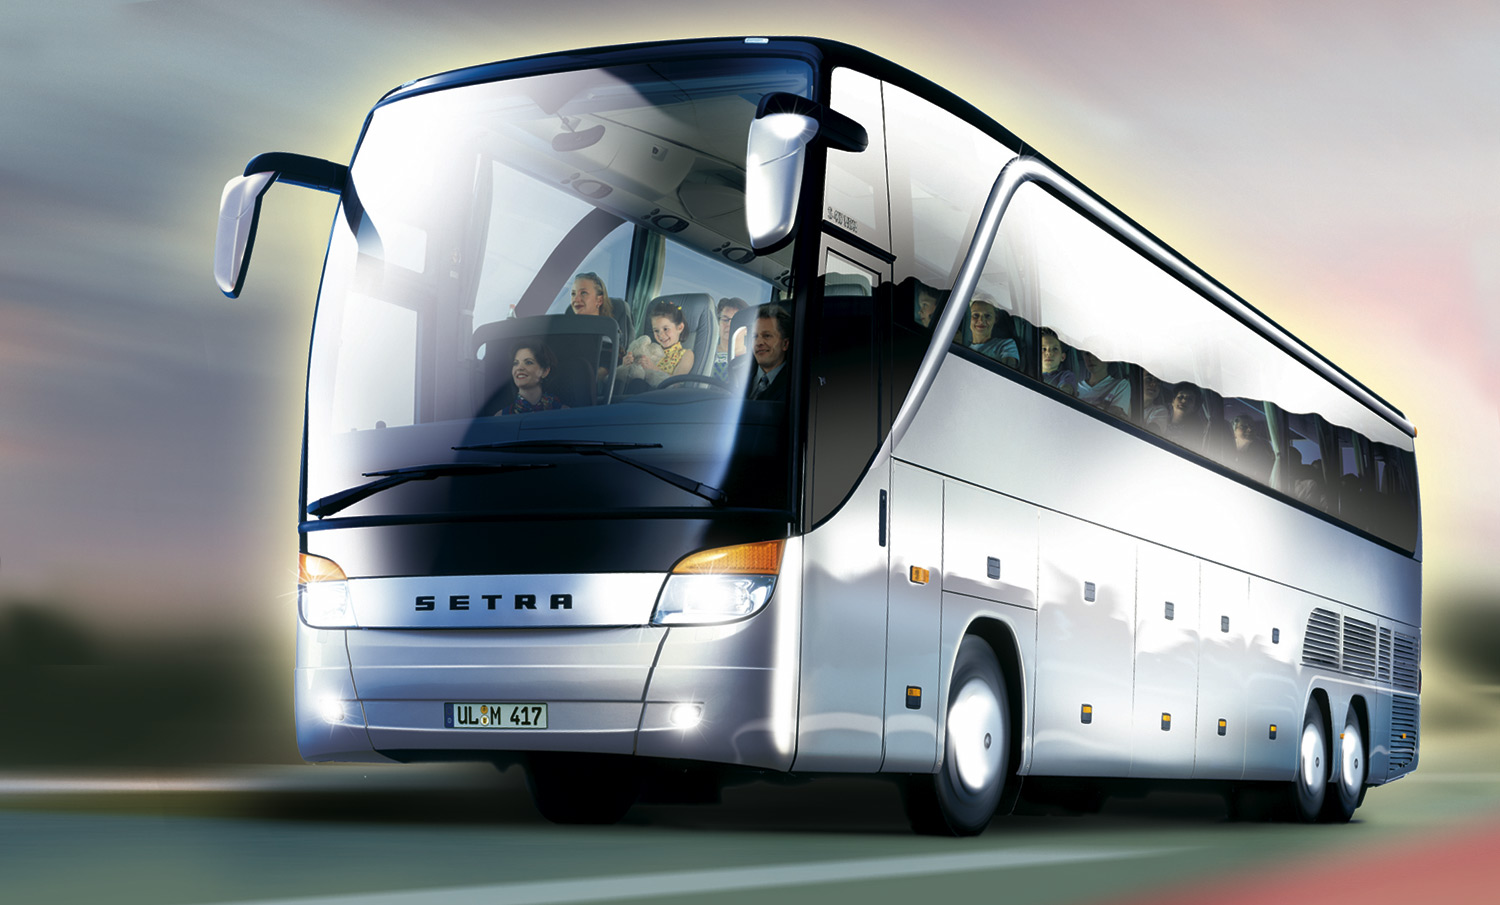 Setra S 417 picture # 35354 | Setra photo gallery | CarsBase.